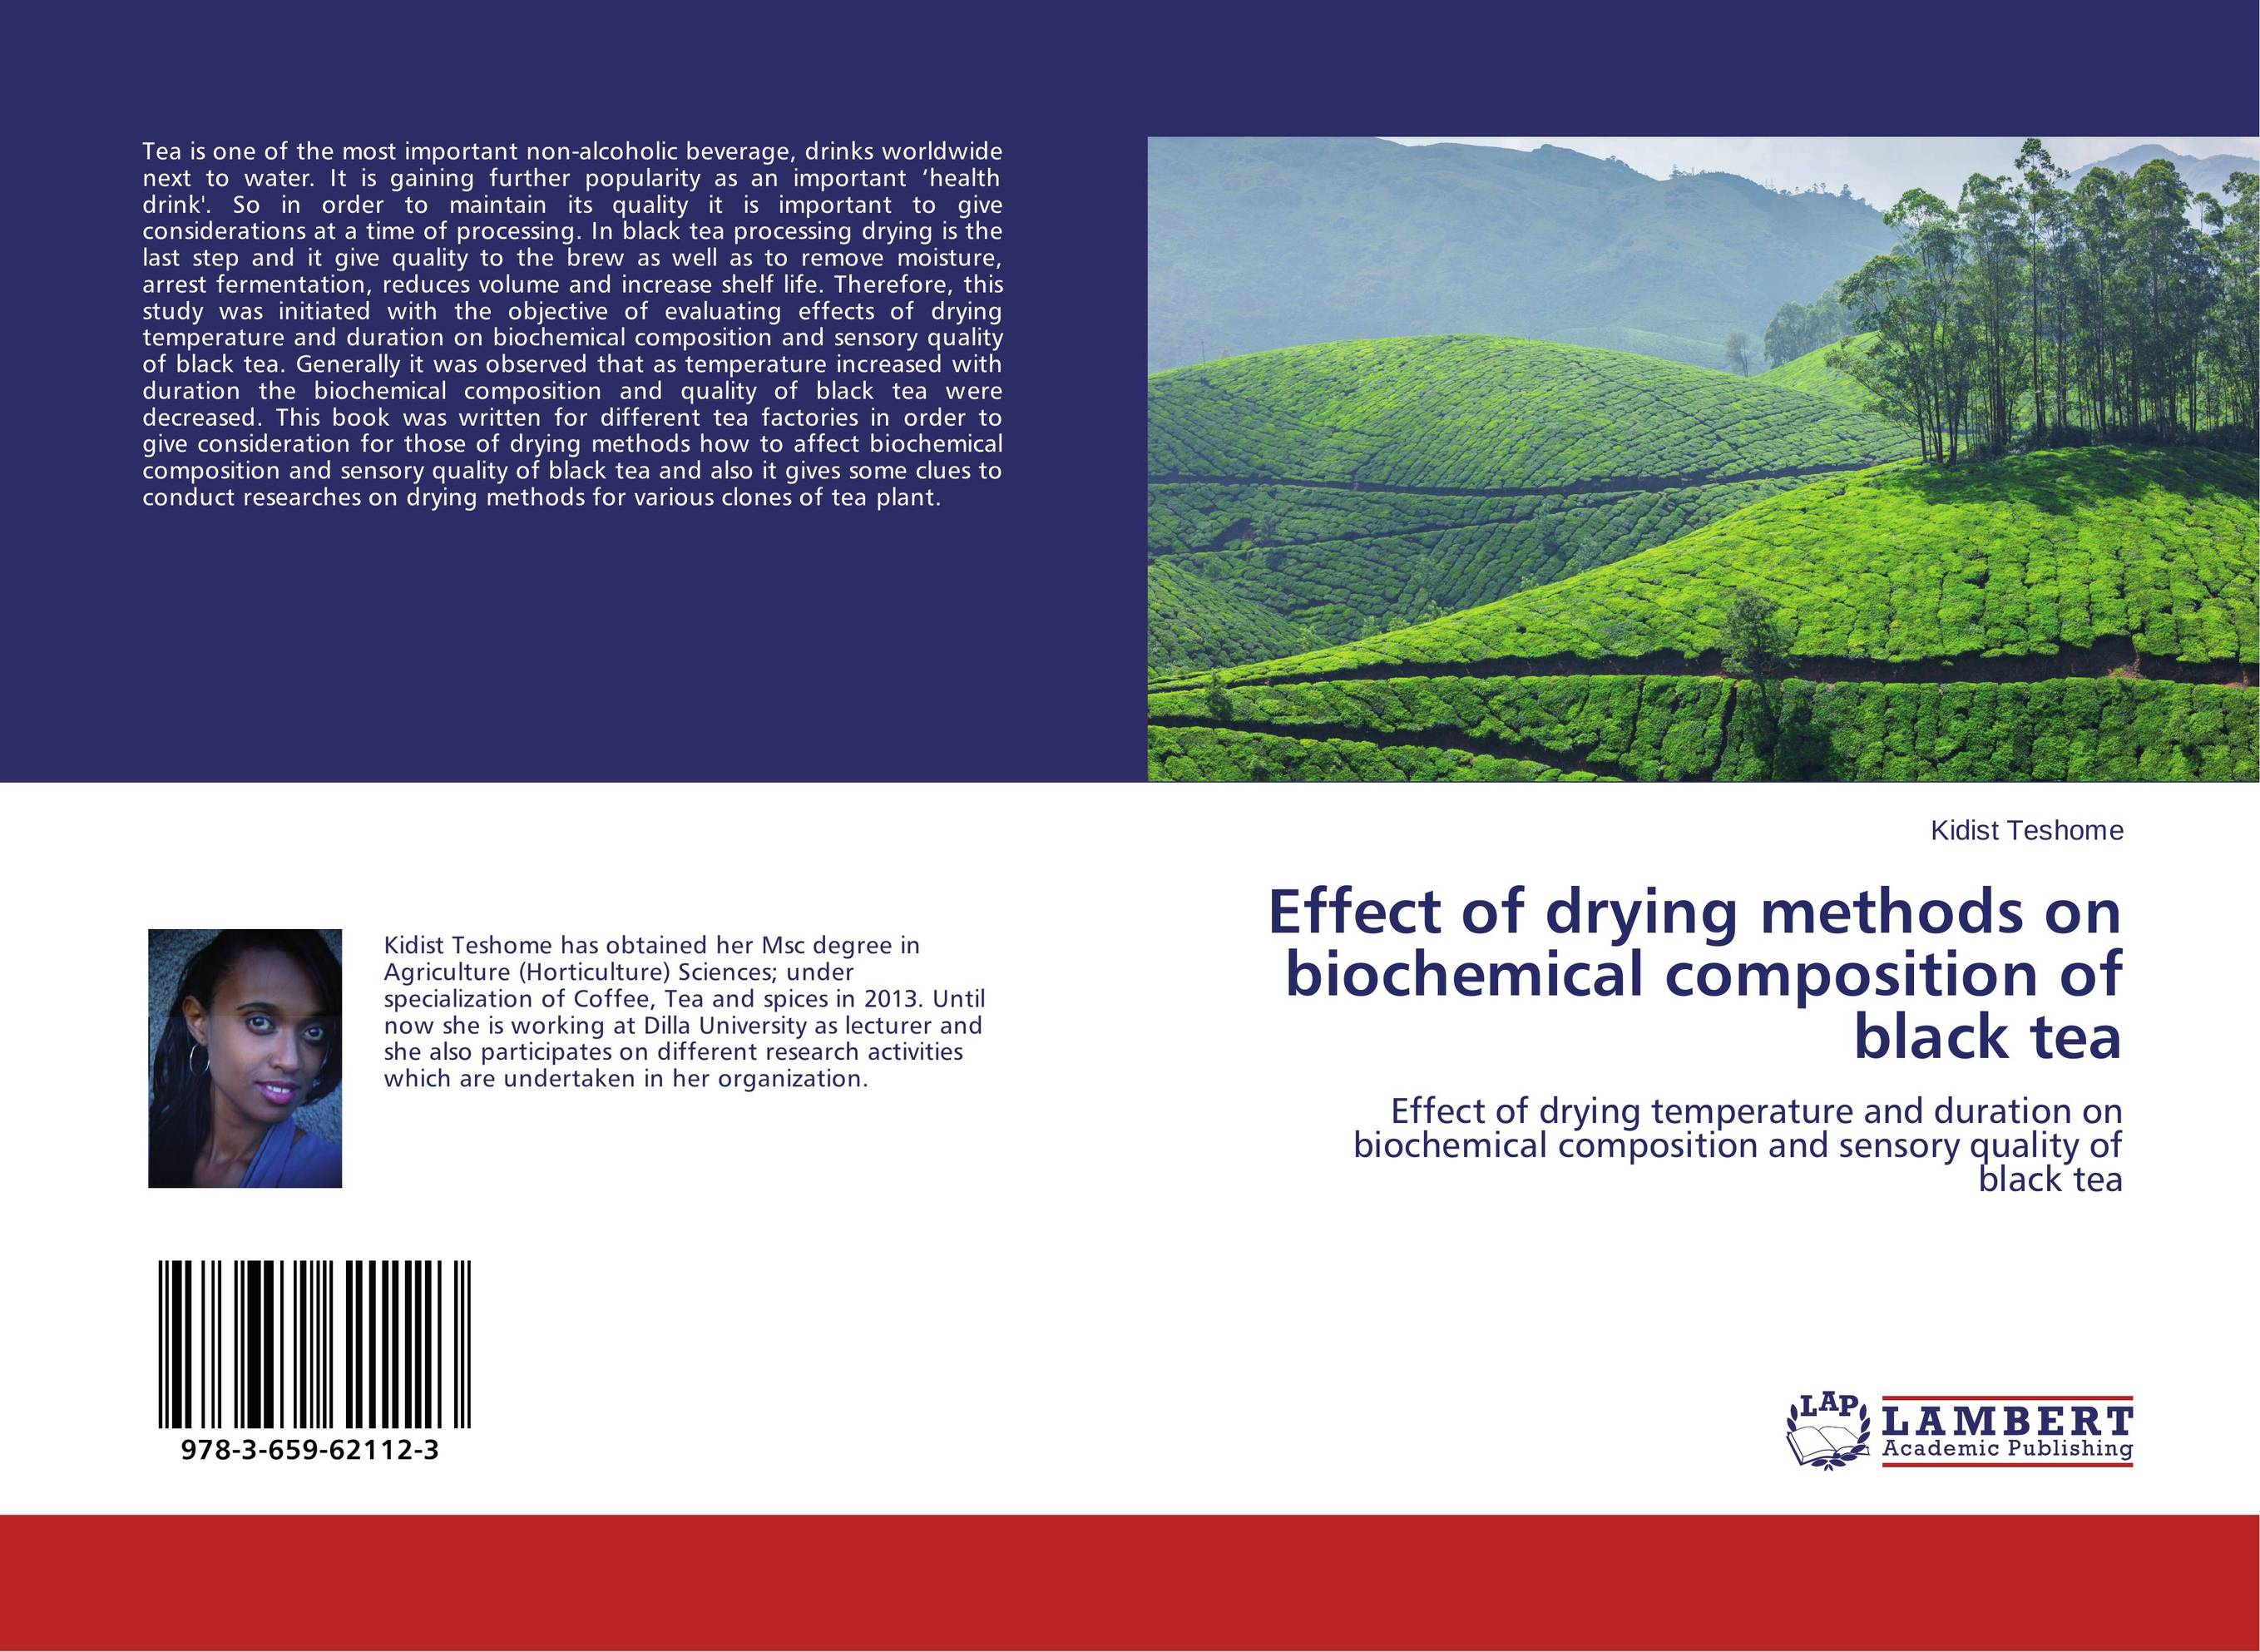 купить Effect of drying methods on biochemical composition of black tea недорого